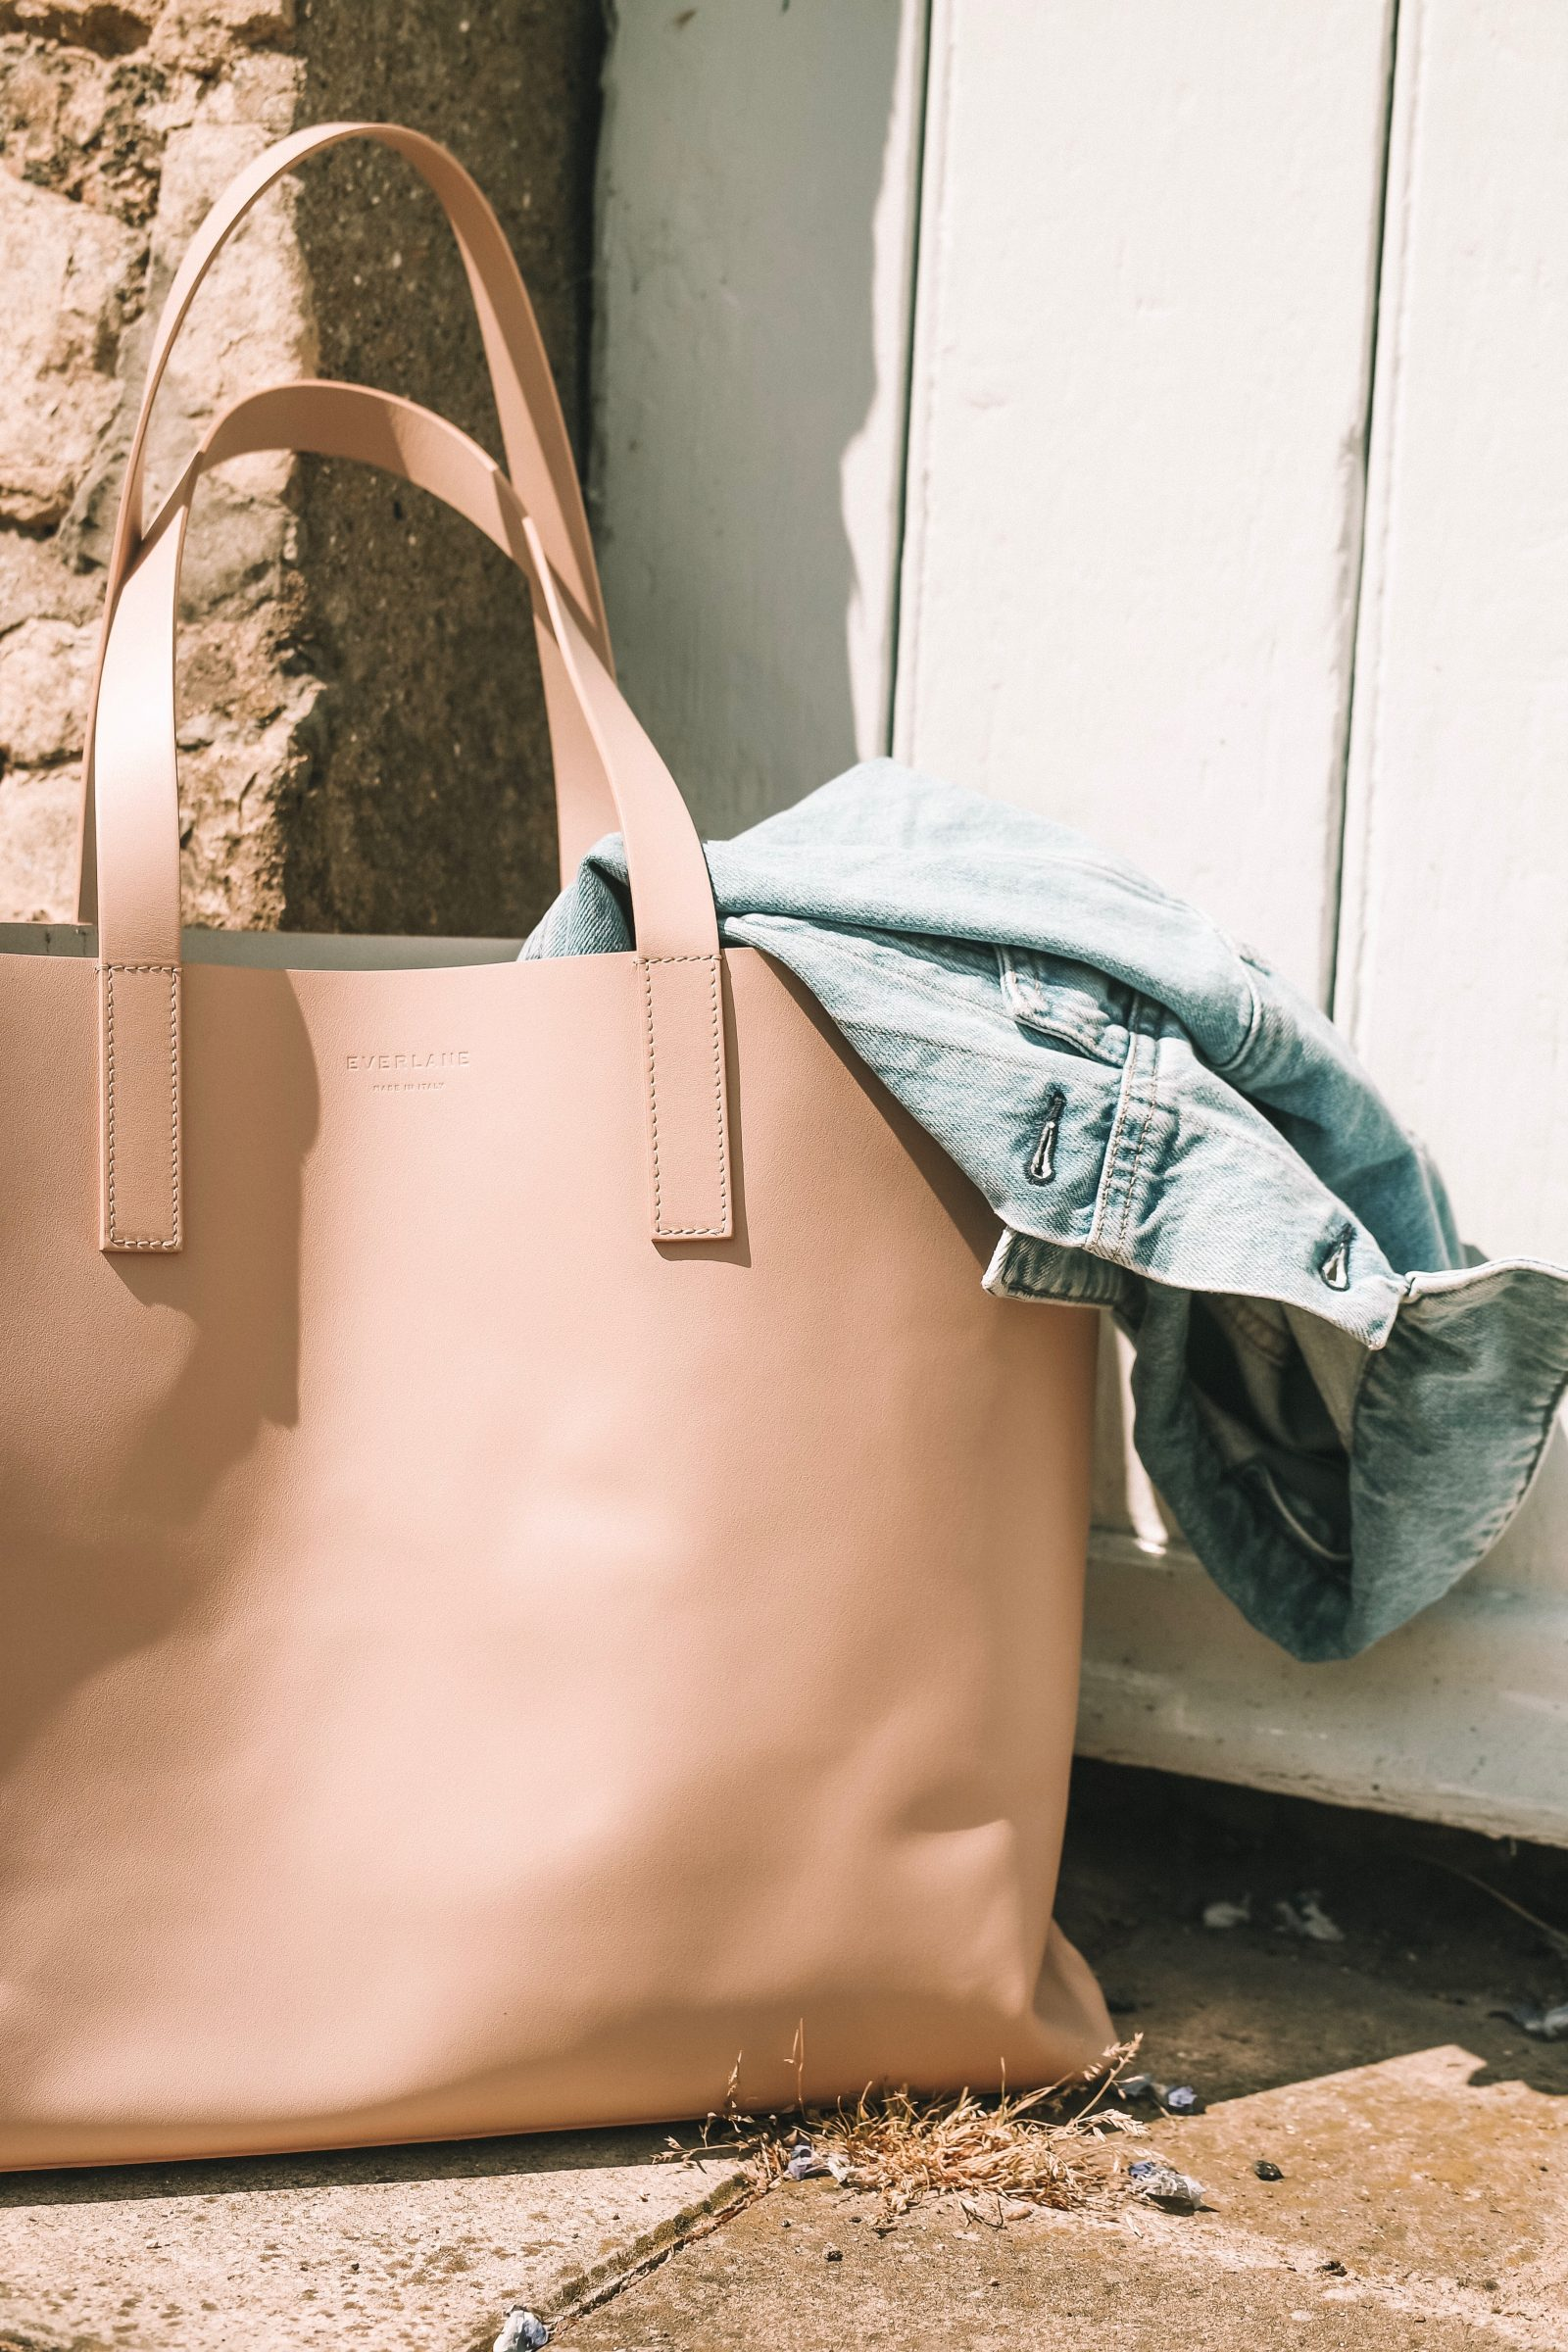 Everlane Leather Blush Day Market Tote - Summer Style